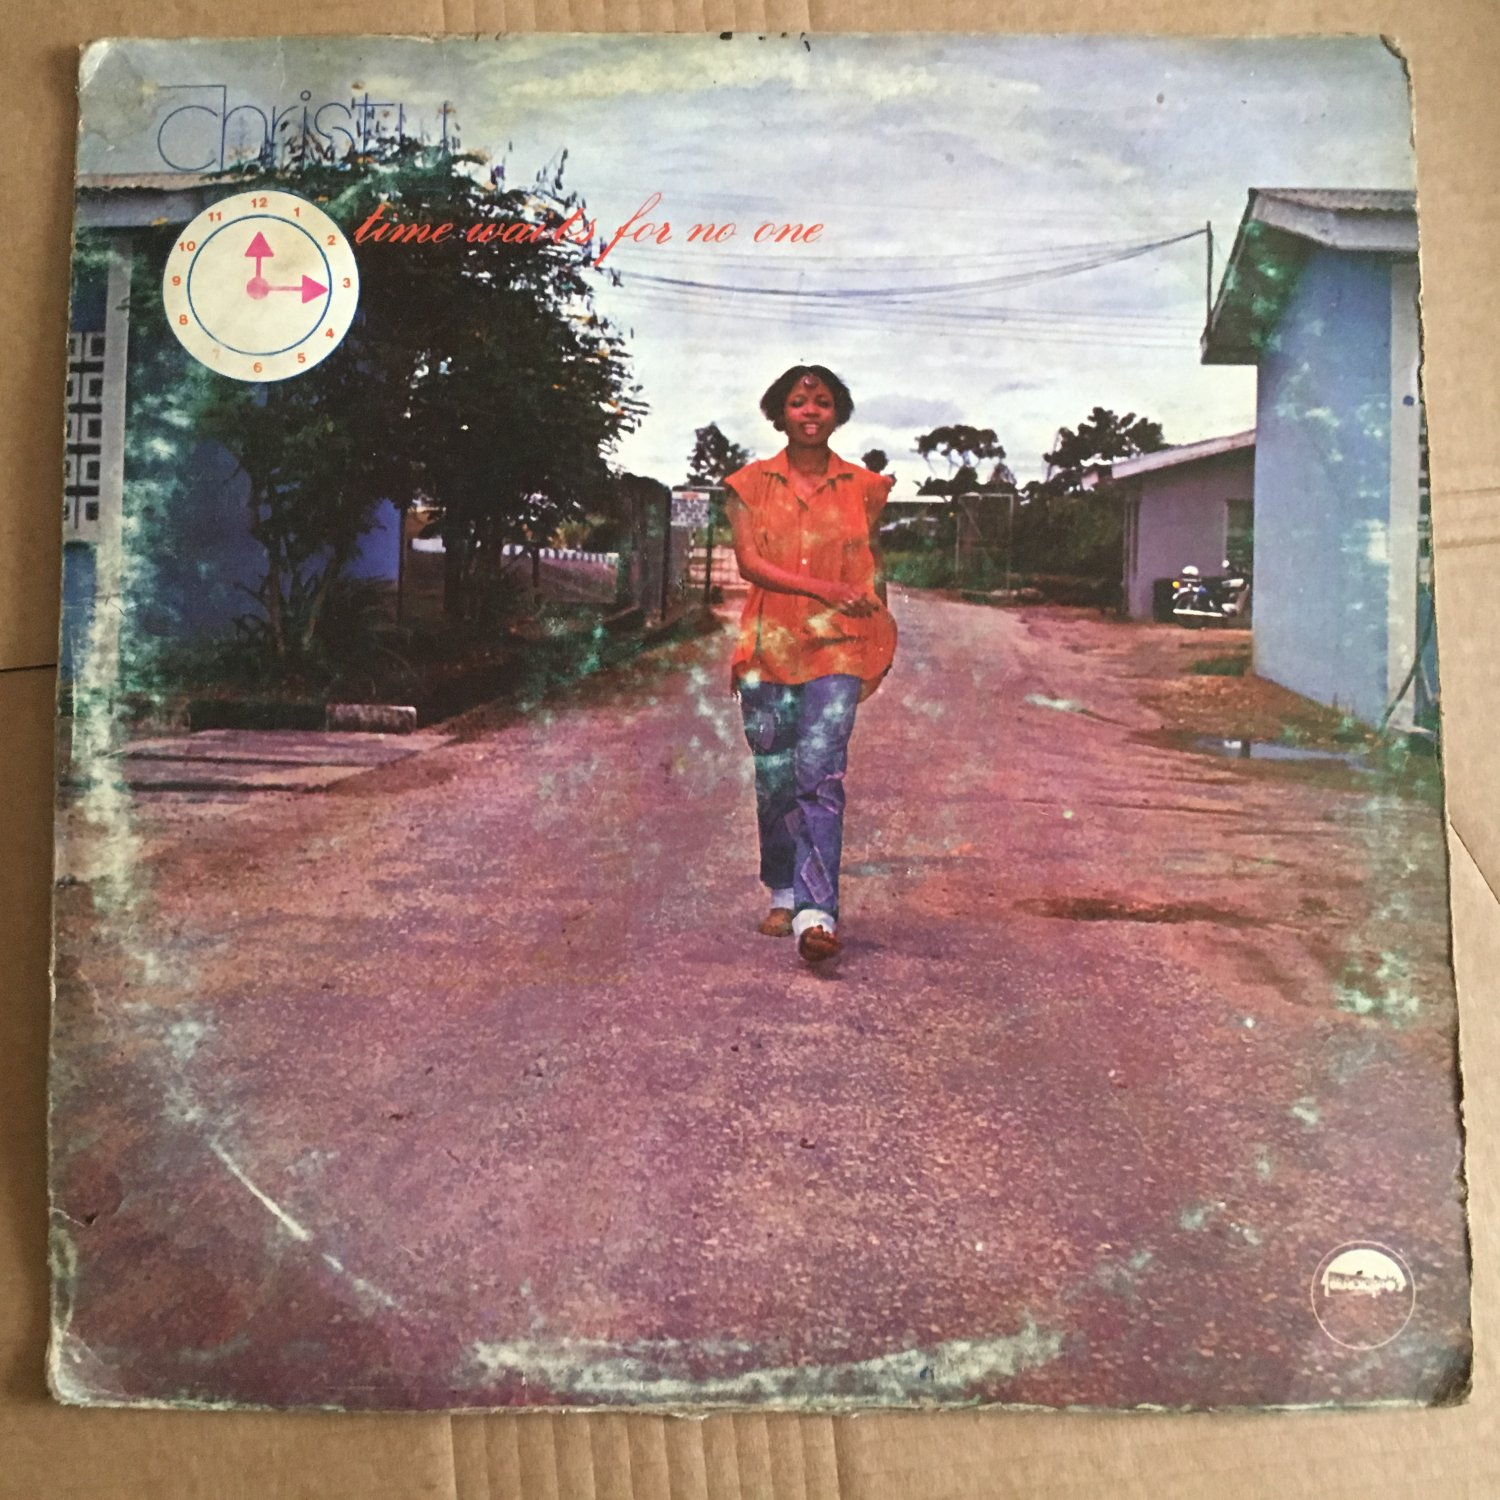 CHRISTY ESSIEN LP time waits for no one NIGERIA FUNK REGGAE mp3